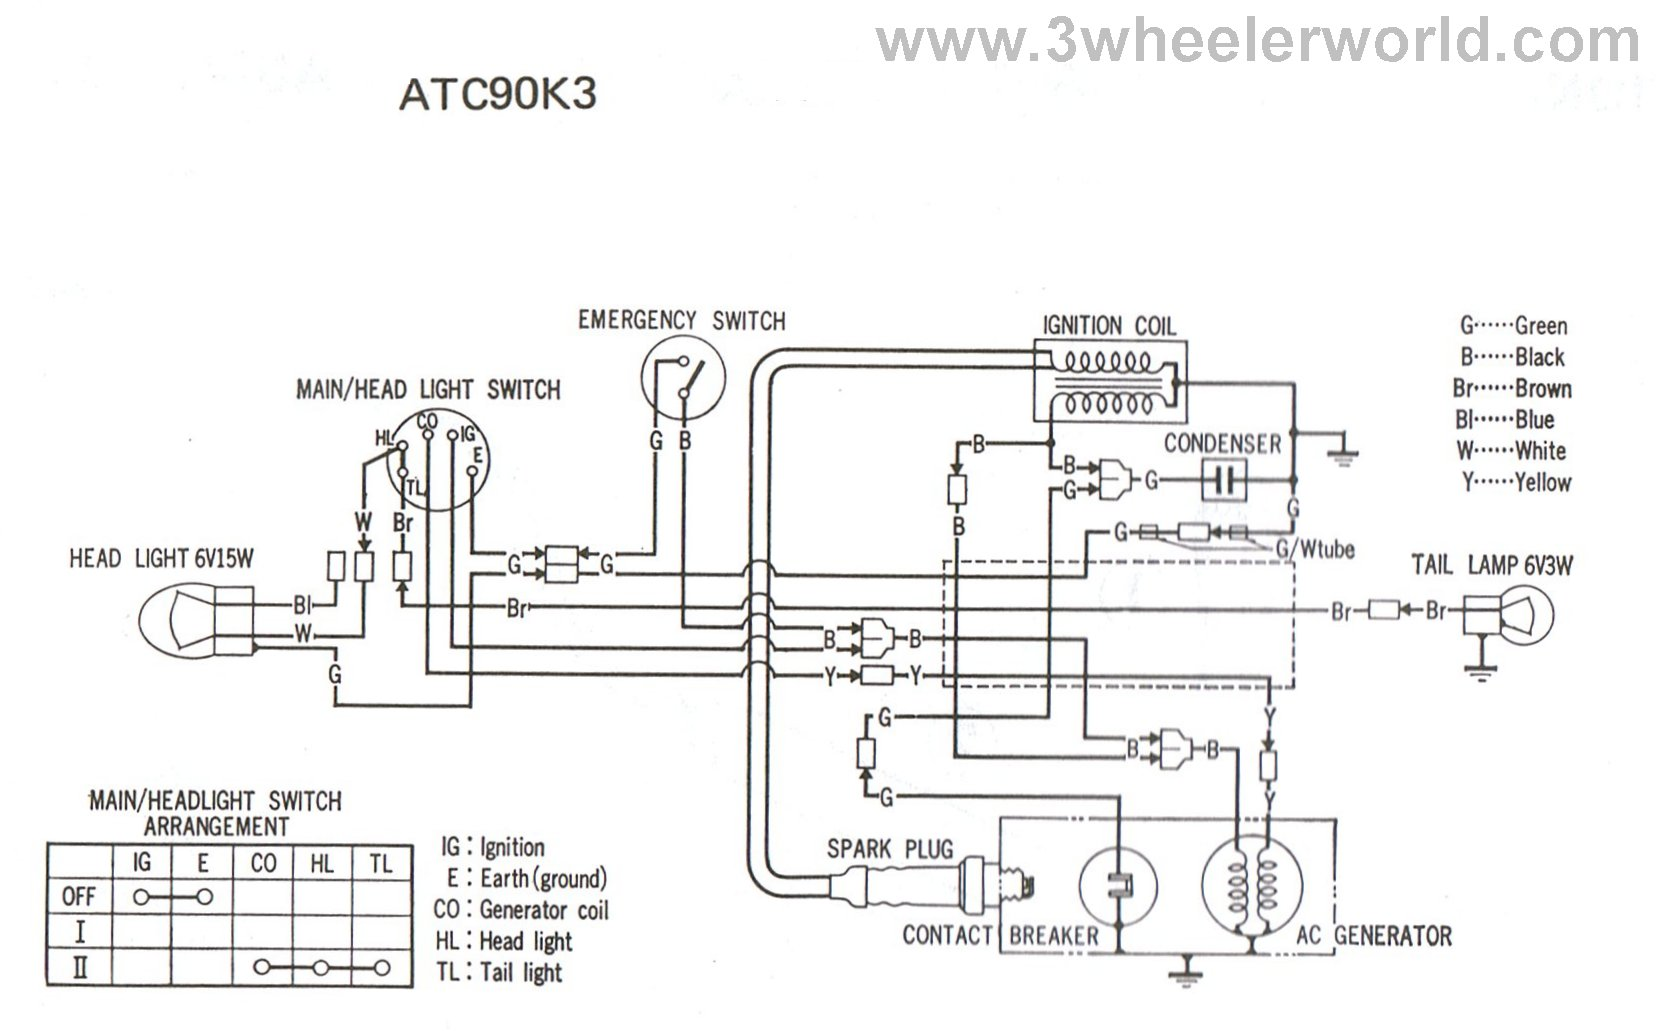 ATC90K3HM polaris predator 90 wiring diagram polaris 90 service manual 2013 Polaris Sportsman 400 at readyjetset.co